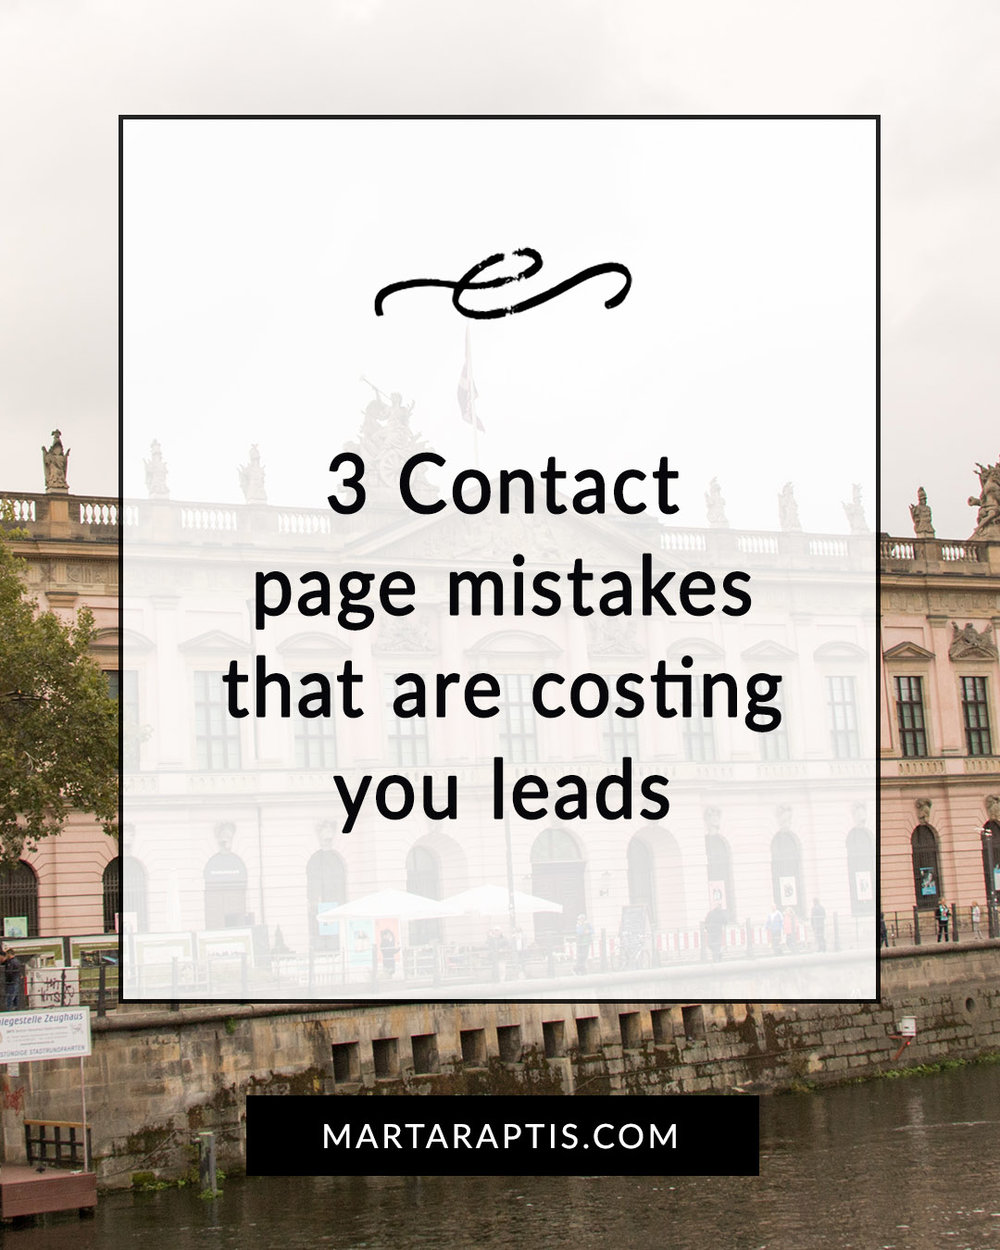 3 Contact page mistakes that are costing you leads.jpg